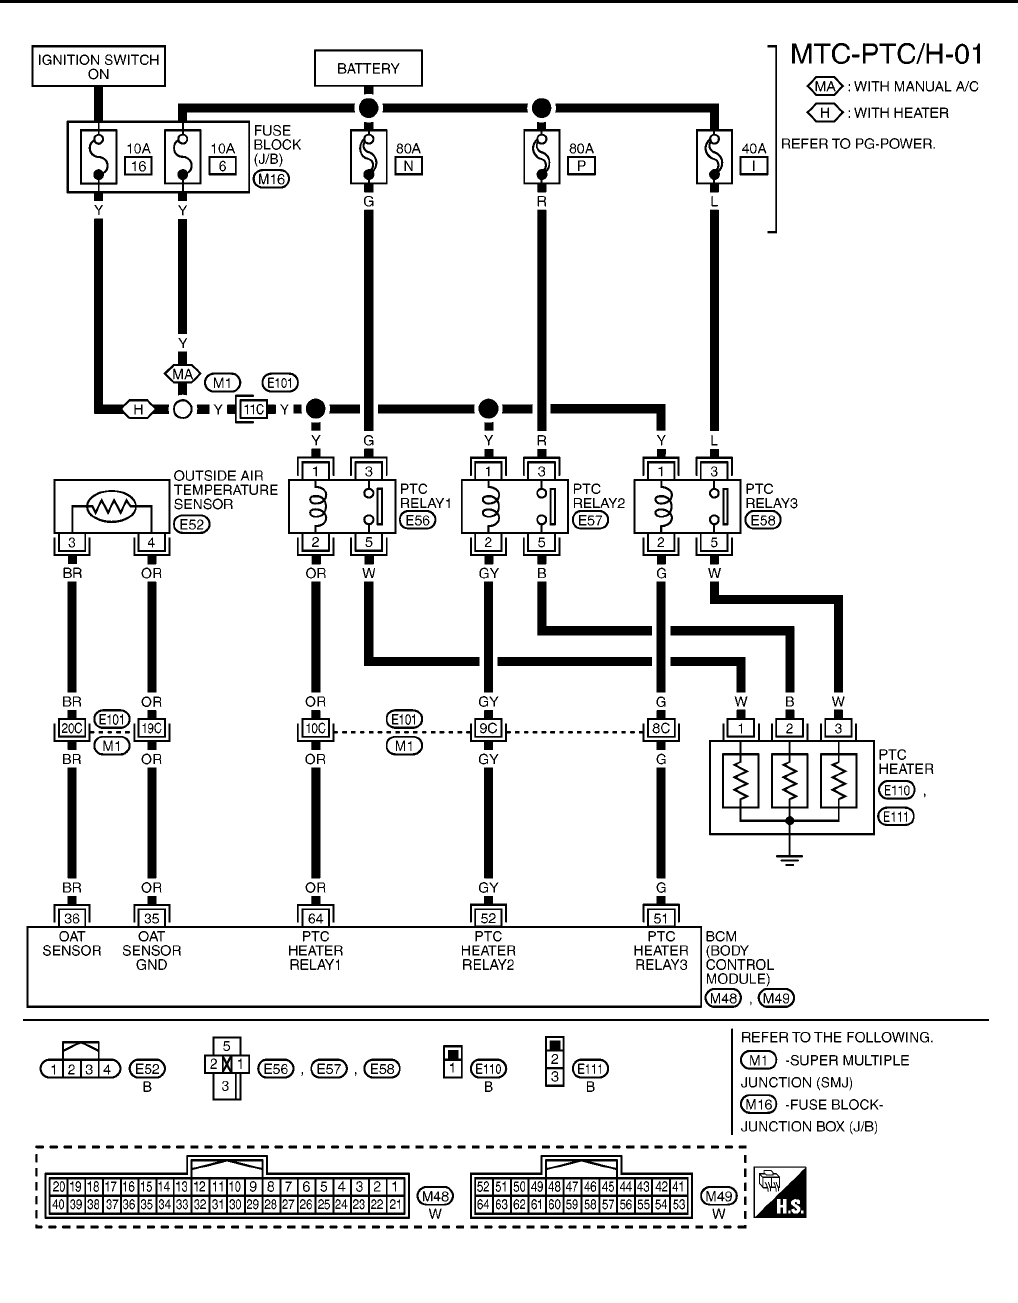 Ptc Heater Wiring Diagram Electrical Diagrams Nissan Micra 2003 2005 24 Pdf Hot Water Schematic